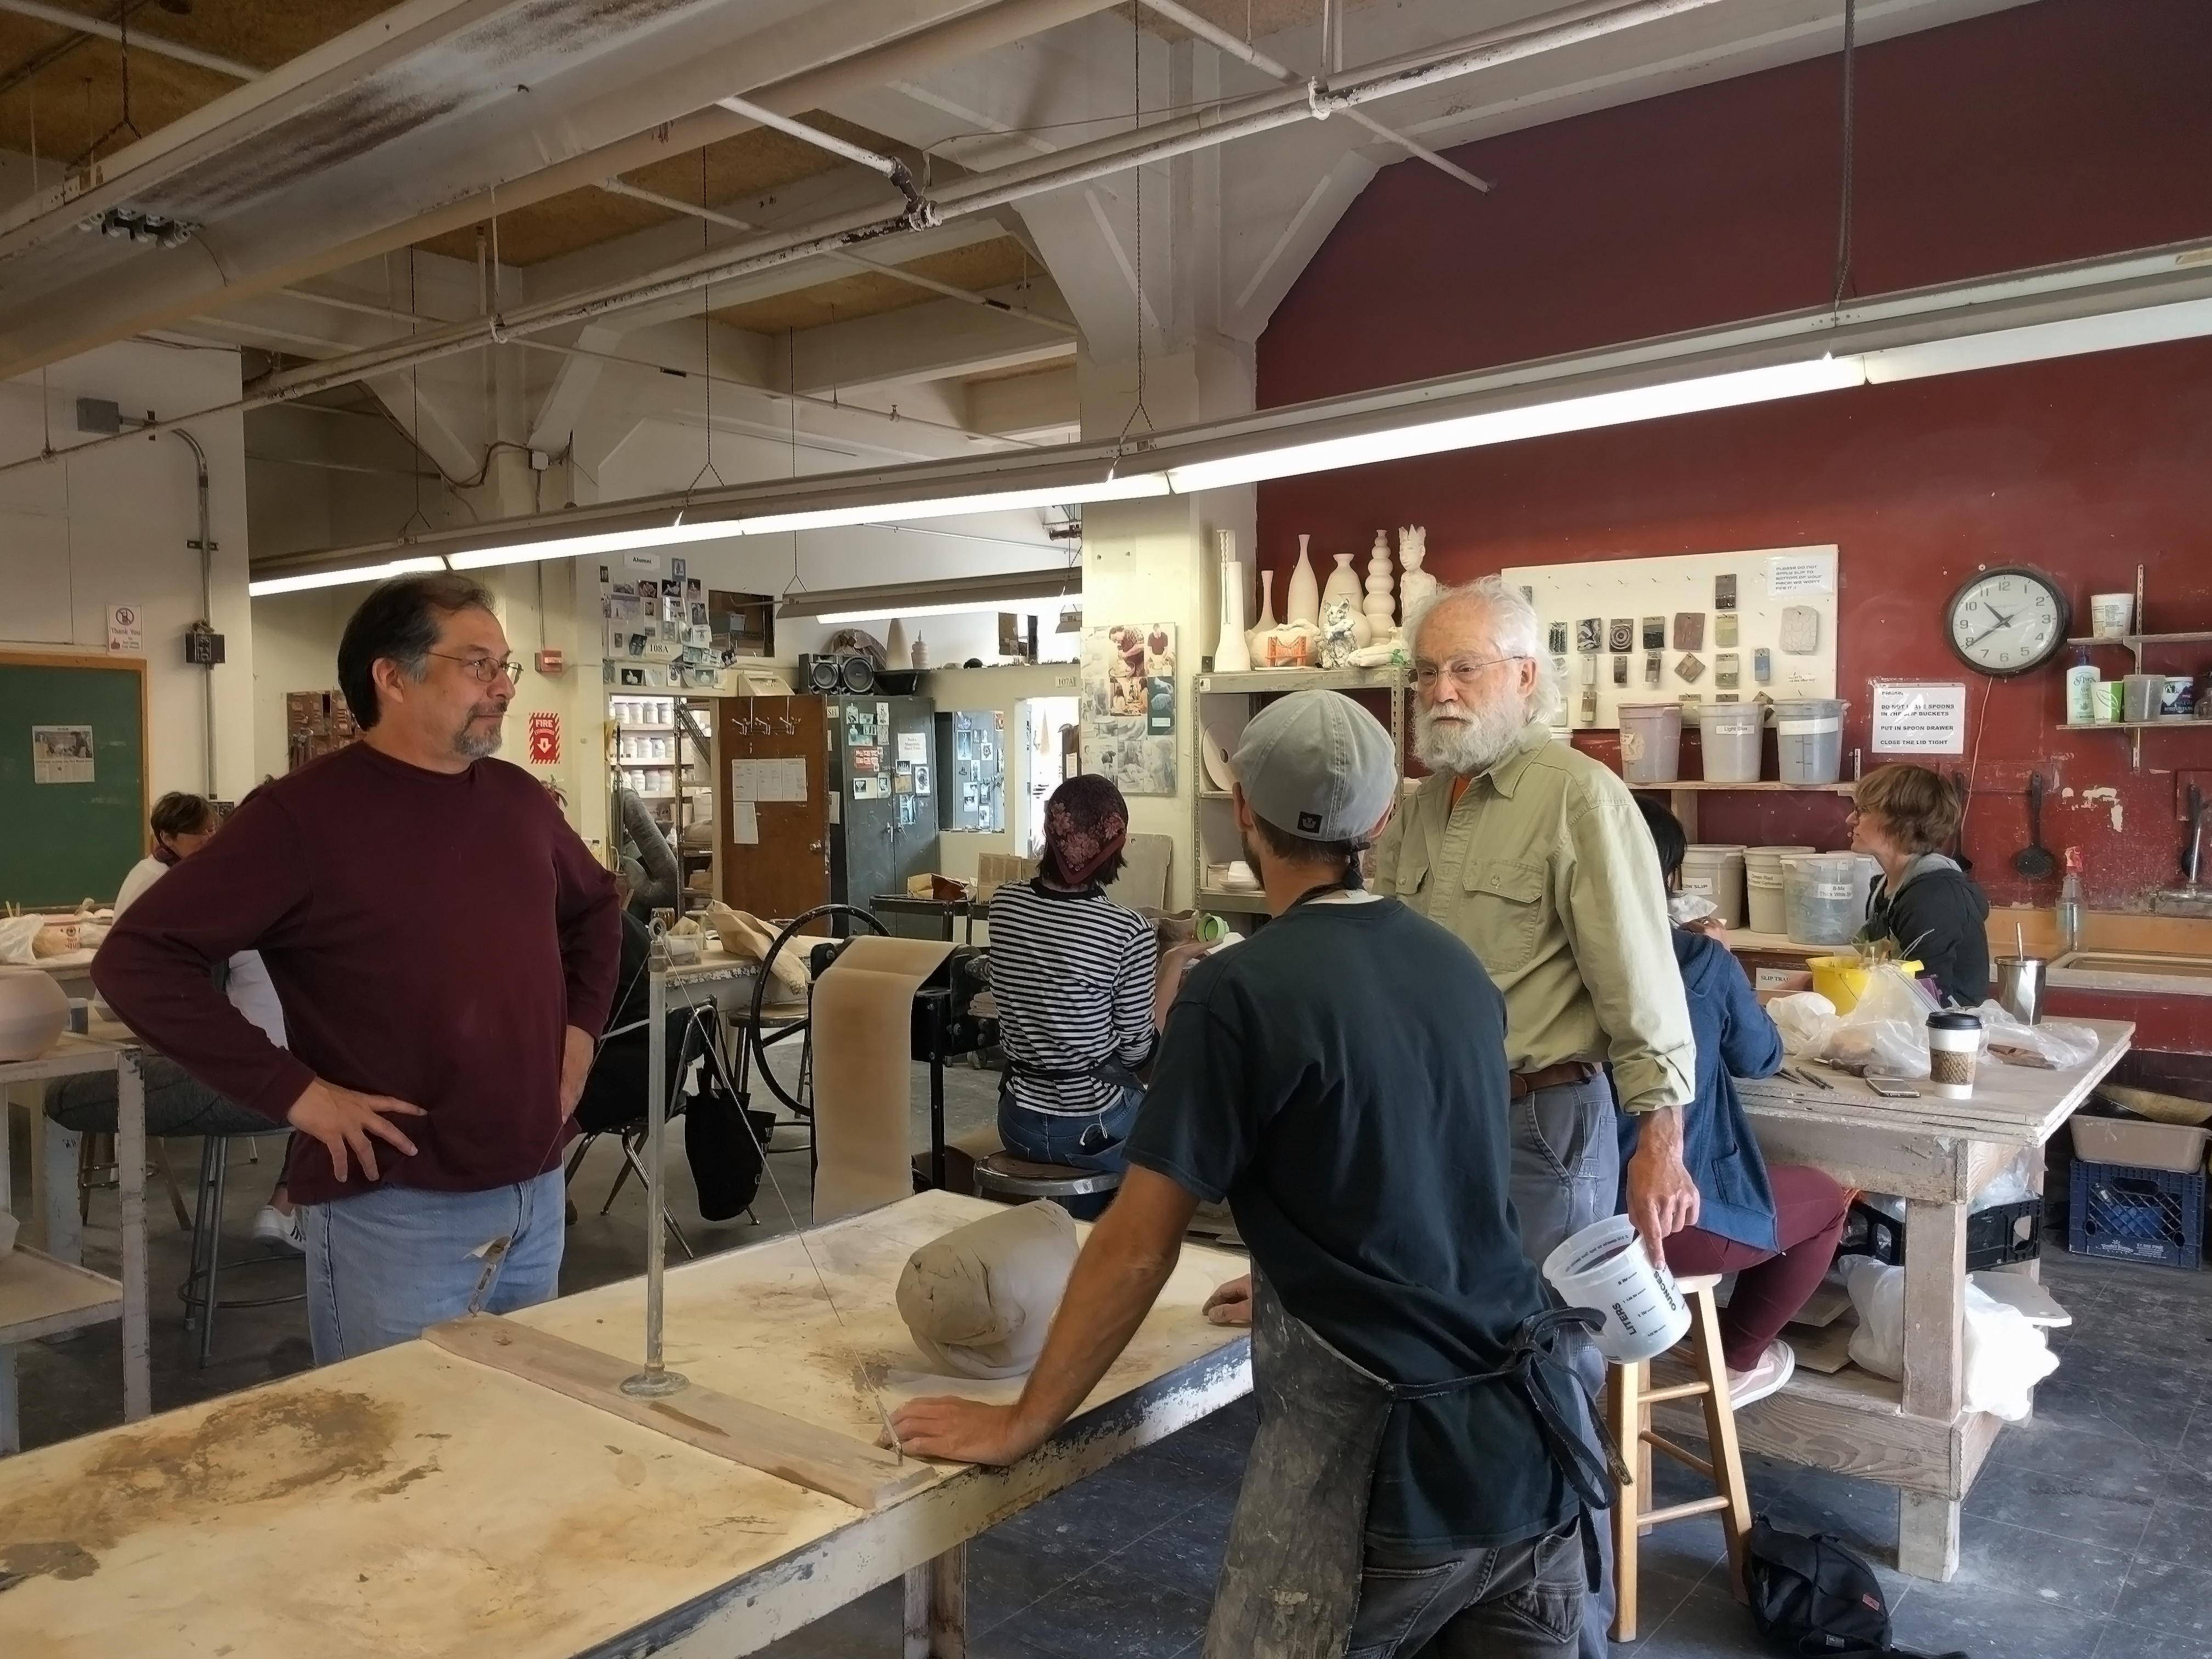 Instructor Olivero Quezada and his assistants instruct students in the spacious Fort Mason ceramics studio. Photo by Elena Stuart/The Guardsman